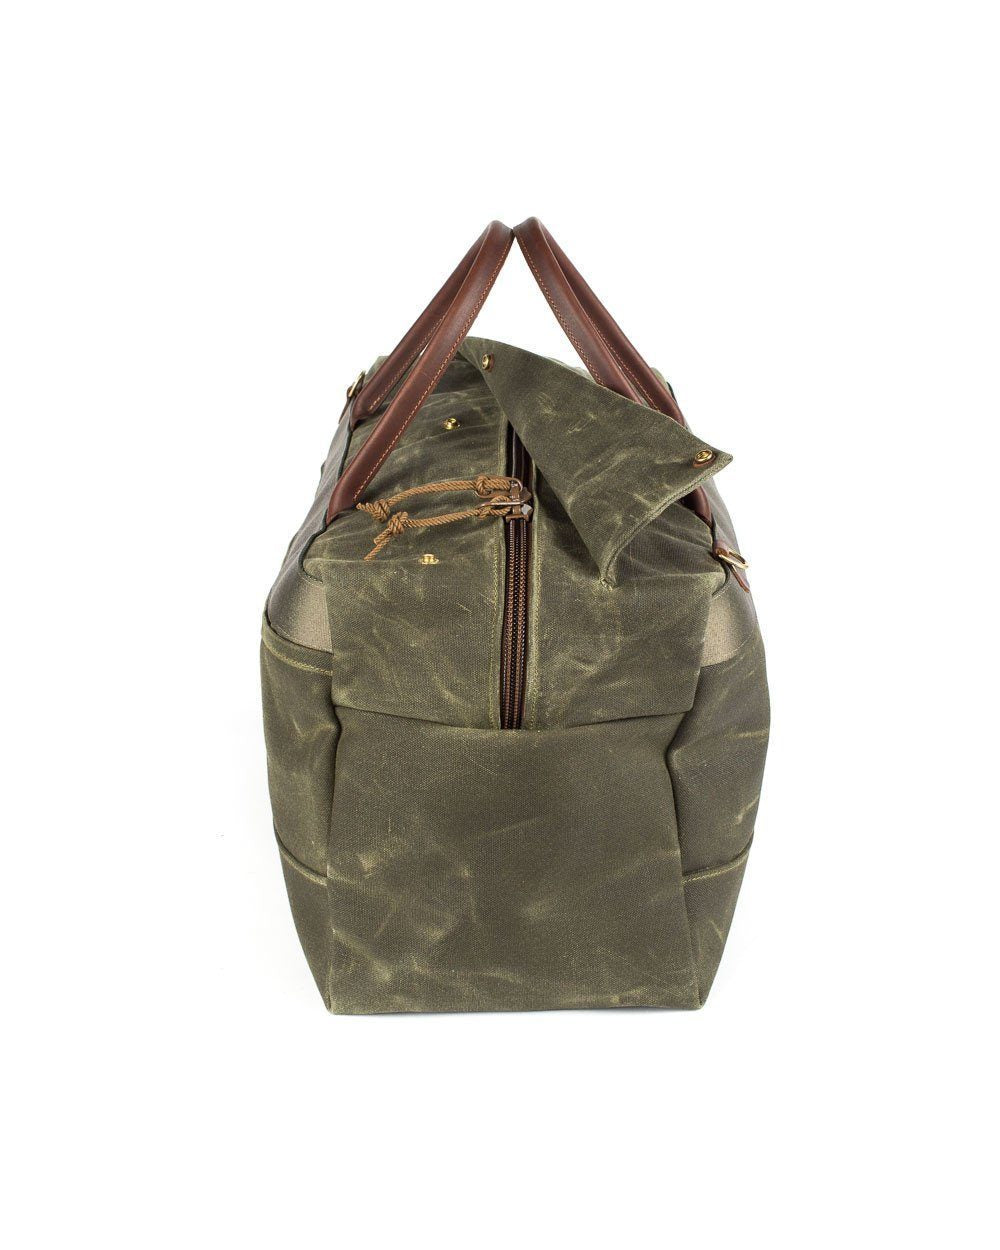 Wood & Faulk Grand Tourer Duffel in Balmoral Moss, waxed canvas, weekender